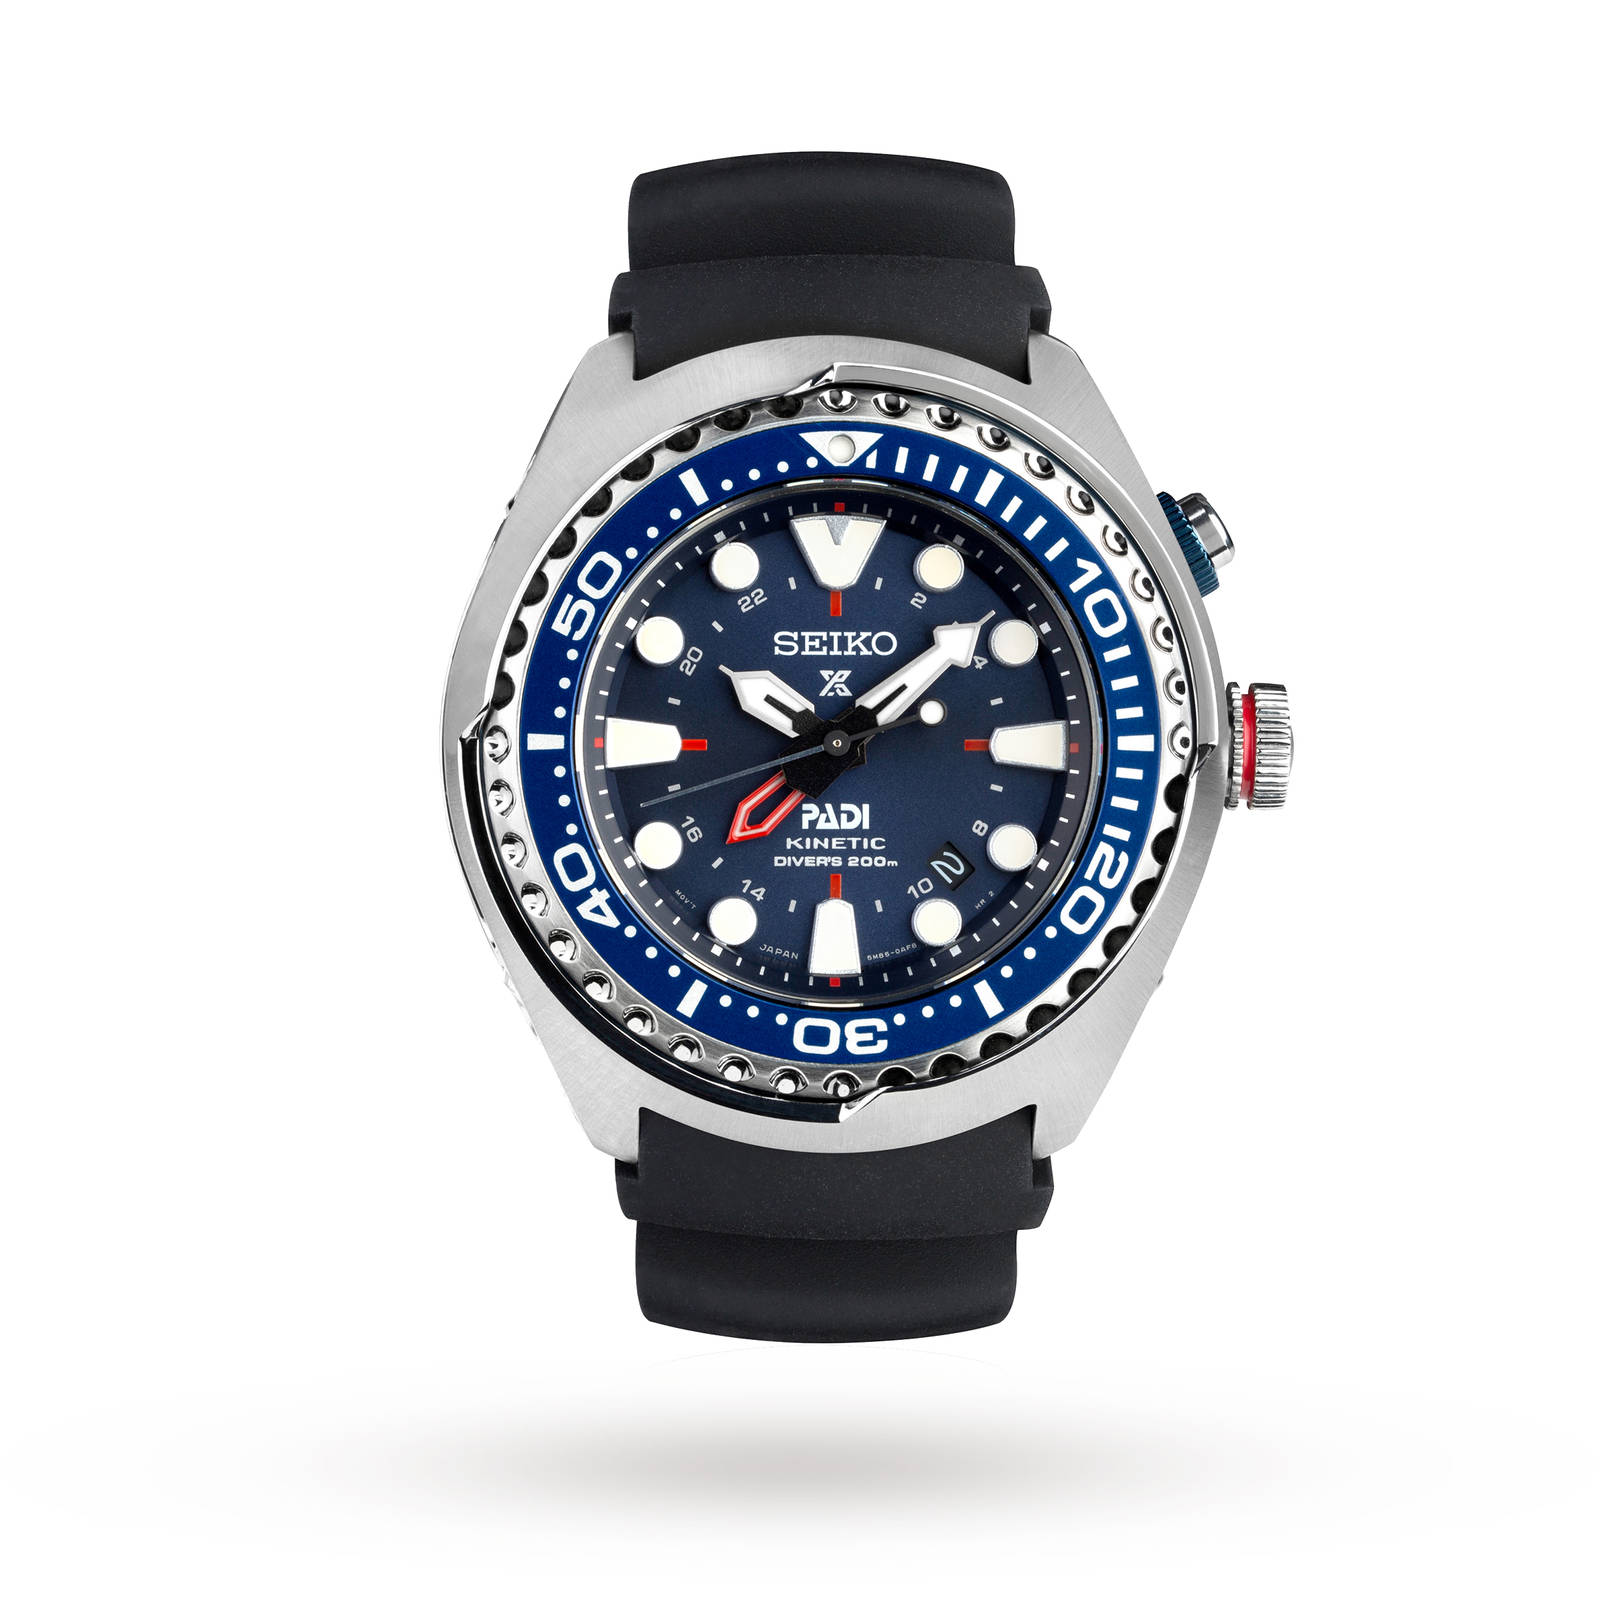 Cheap Kinetic Watches Compare Mens Prices For Best UK Deals